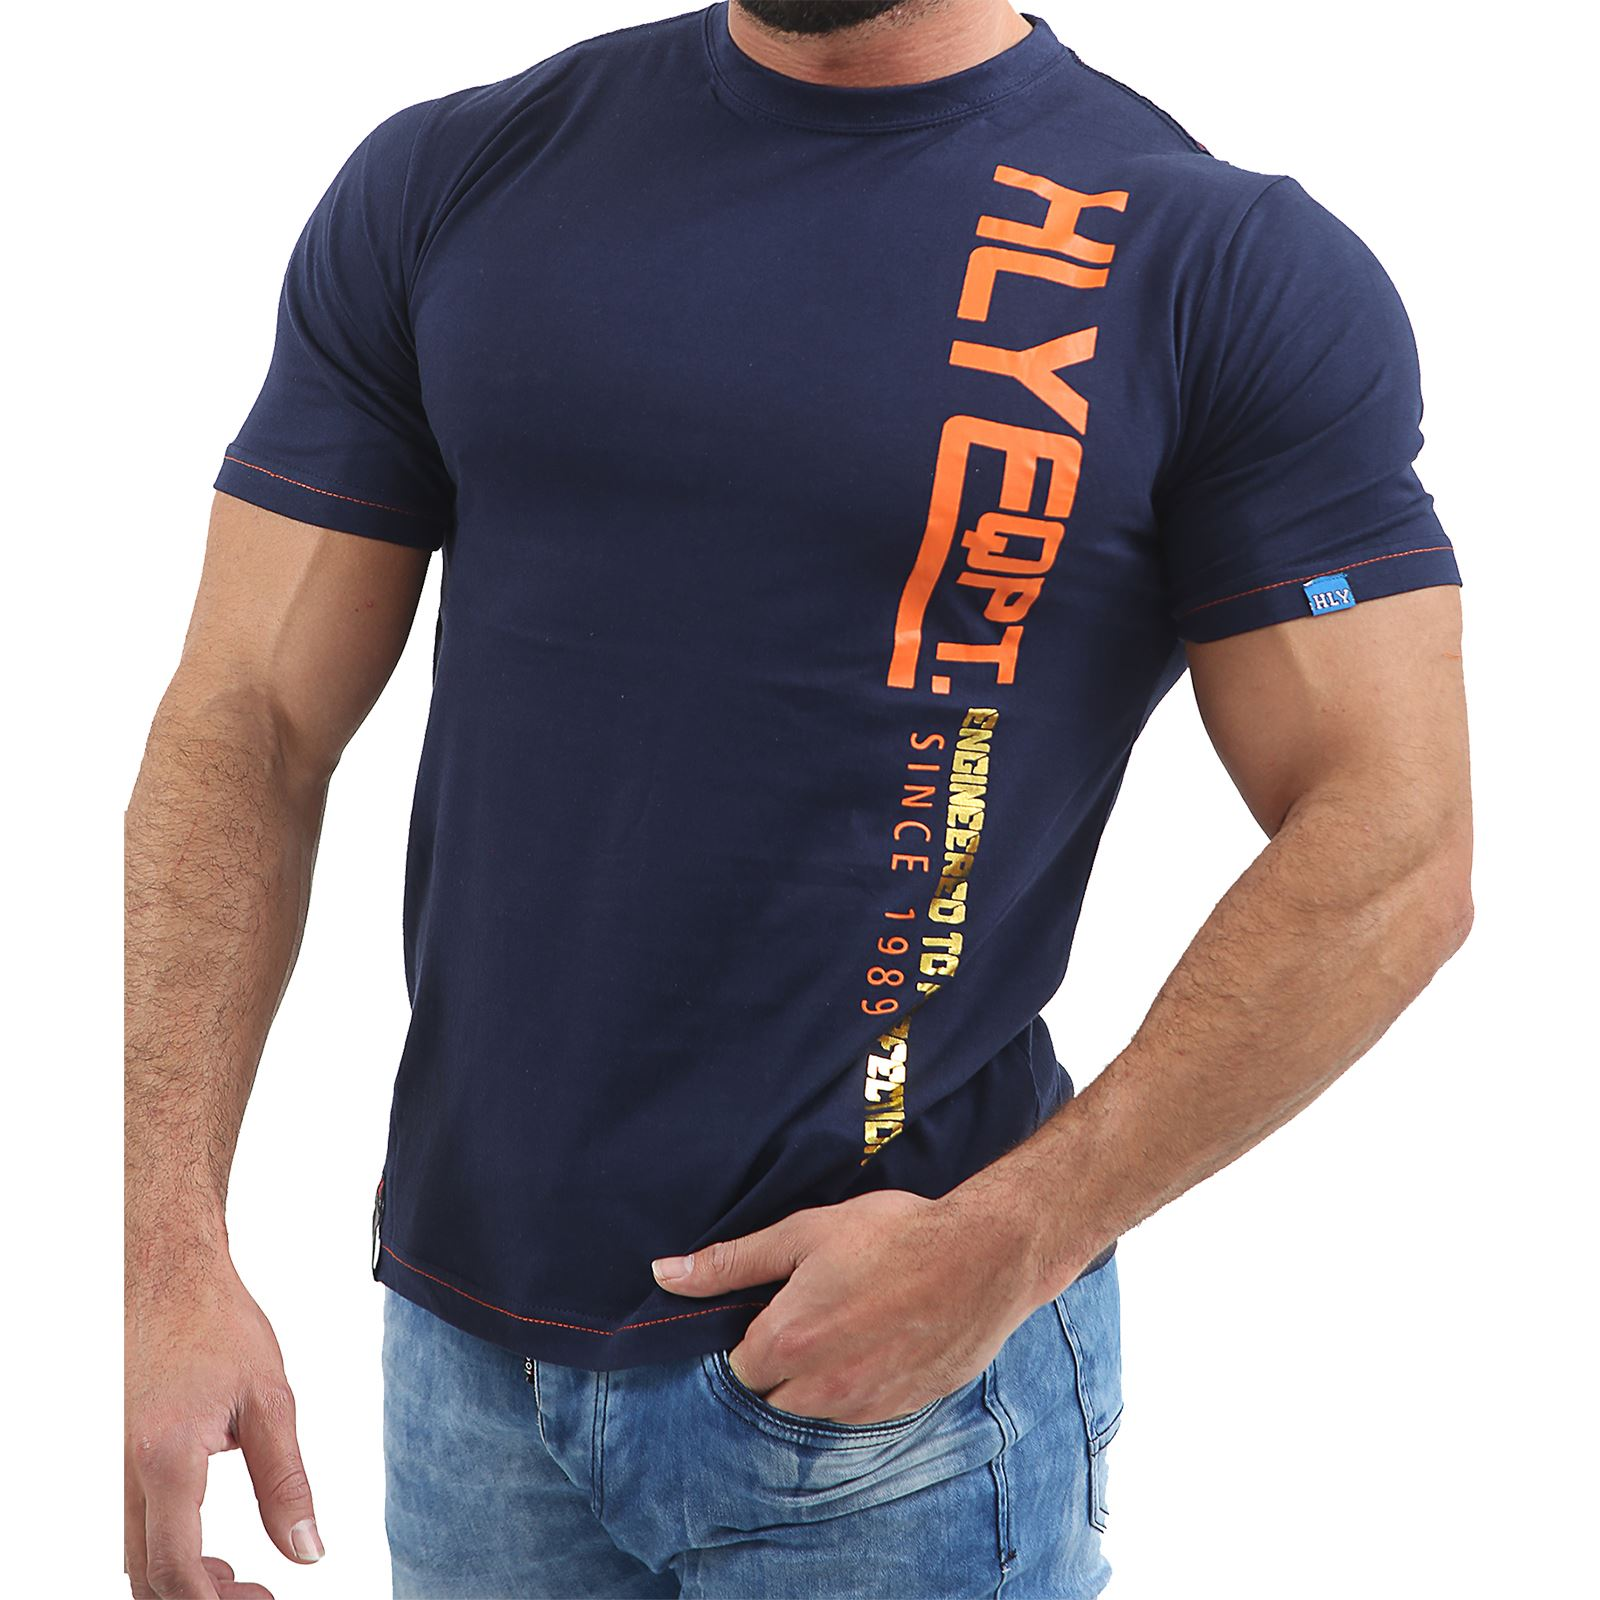 Mens-HLY-EQPT-Printed-T-Shirt-100-Cotton-Gym-Athletic-Training-Tee-Top-Summer thumbnail 12